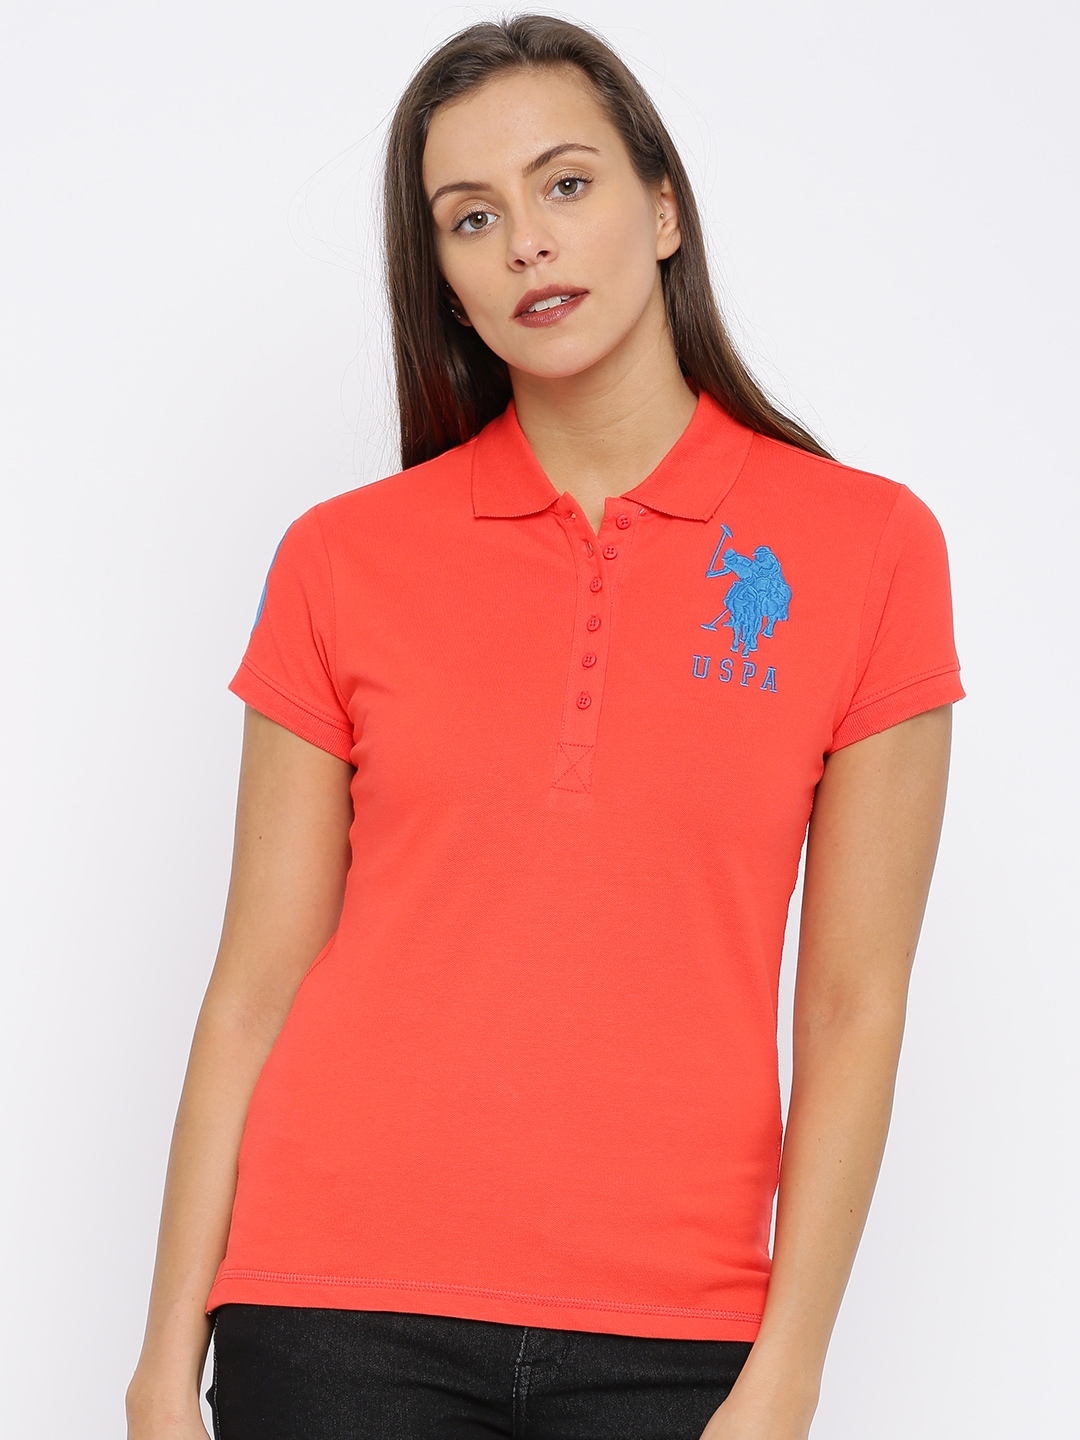 a57152d91e7 U S Polo T-Shirts - Buy U S Polo T-Shirts For Men   Women